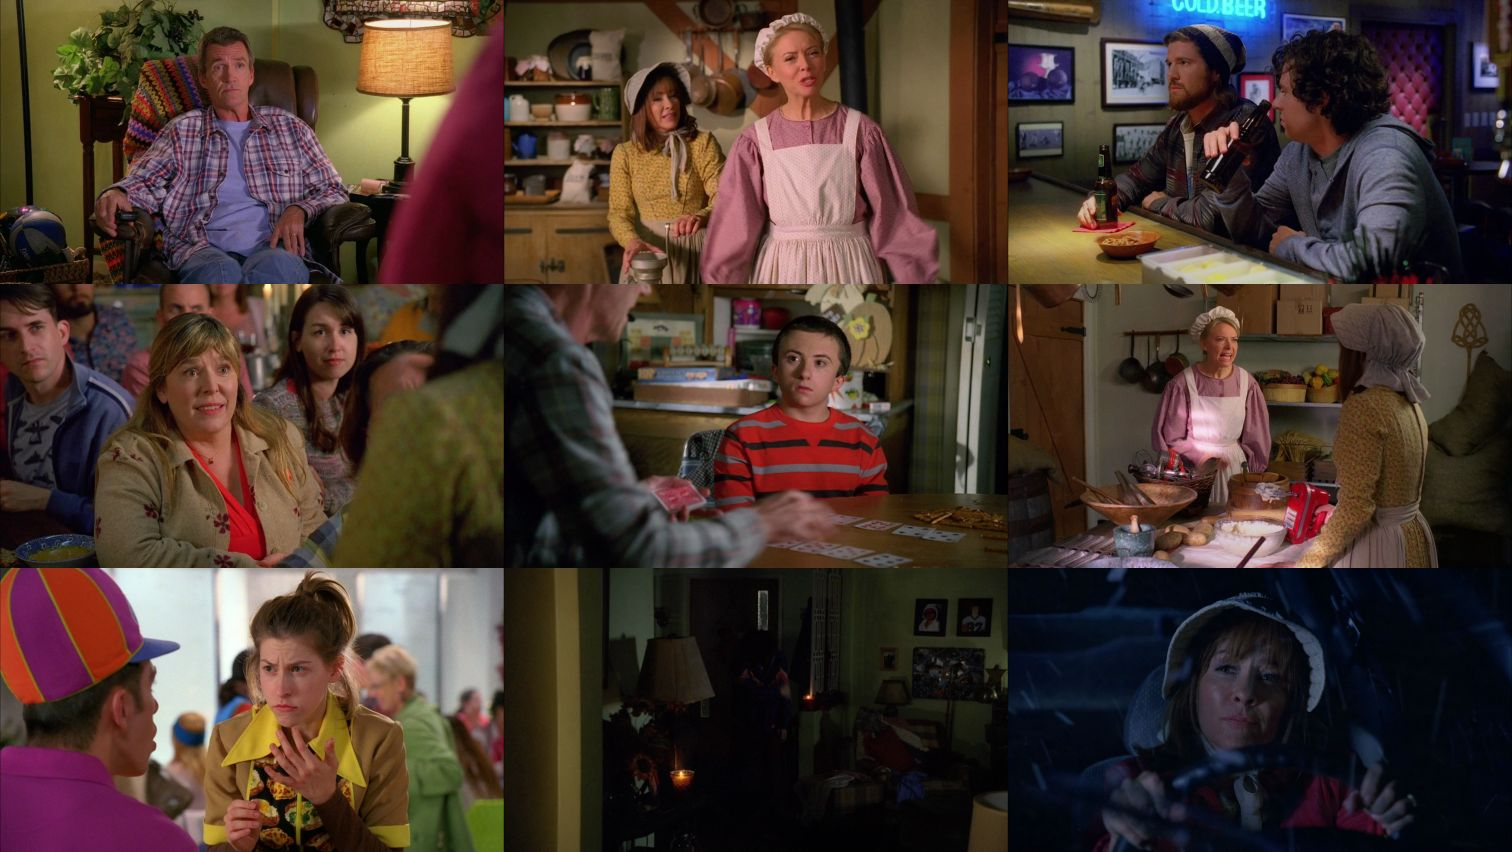 The Middle S07E08 HDTV x264-LOL